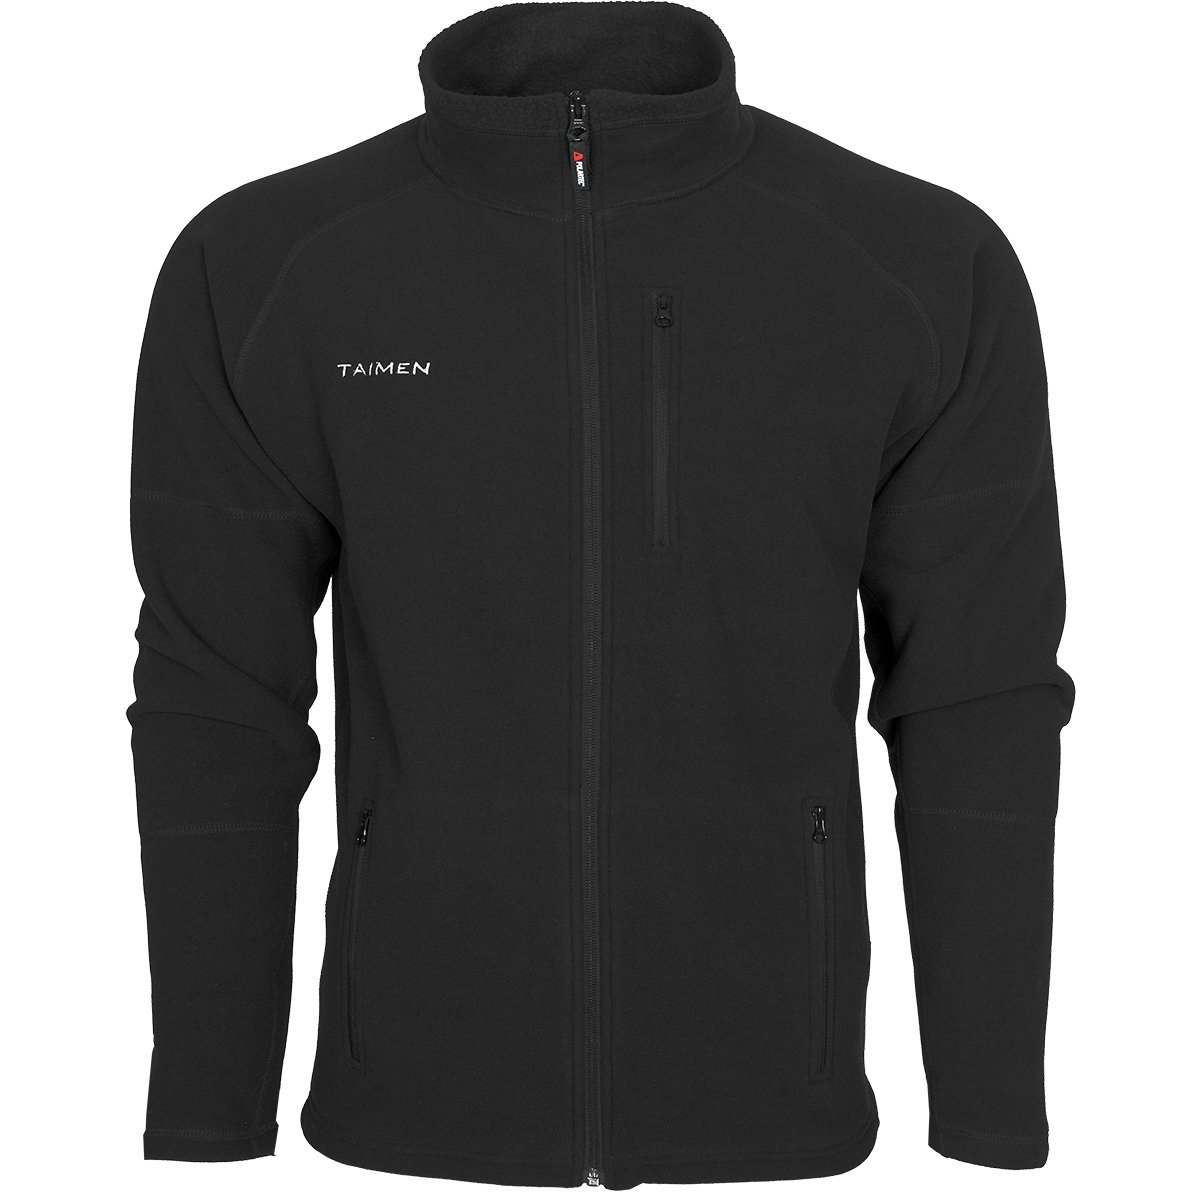 Taimen Polartec Thermal Pro Full Zip Jacket